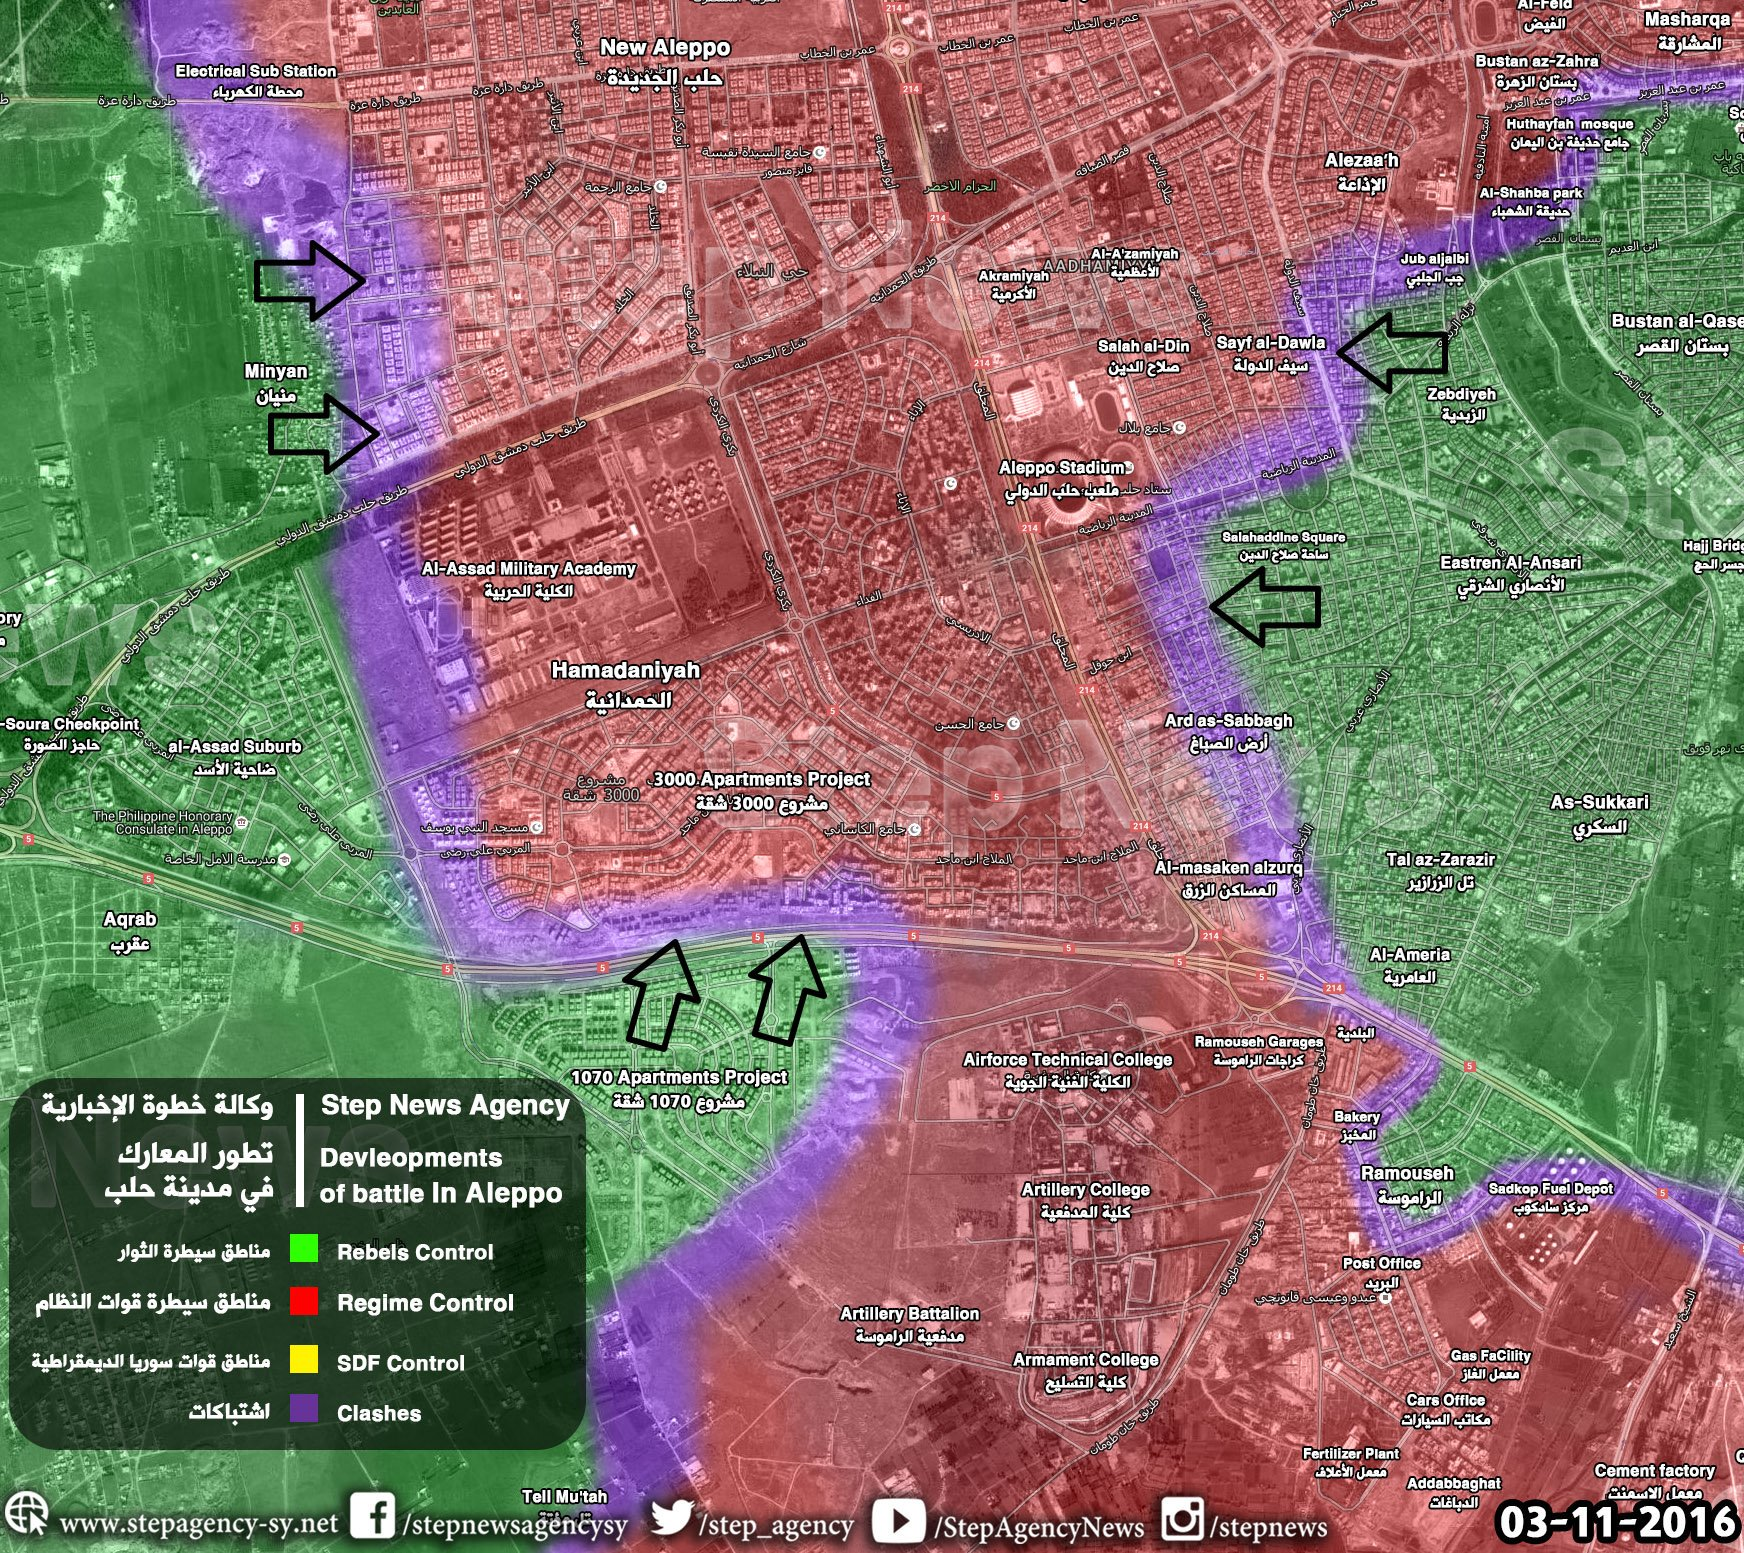 Overview of Military Situation in Aleppo City on November 4, 2016